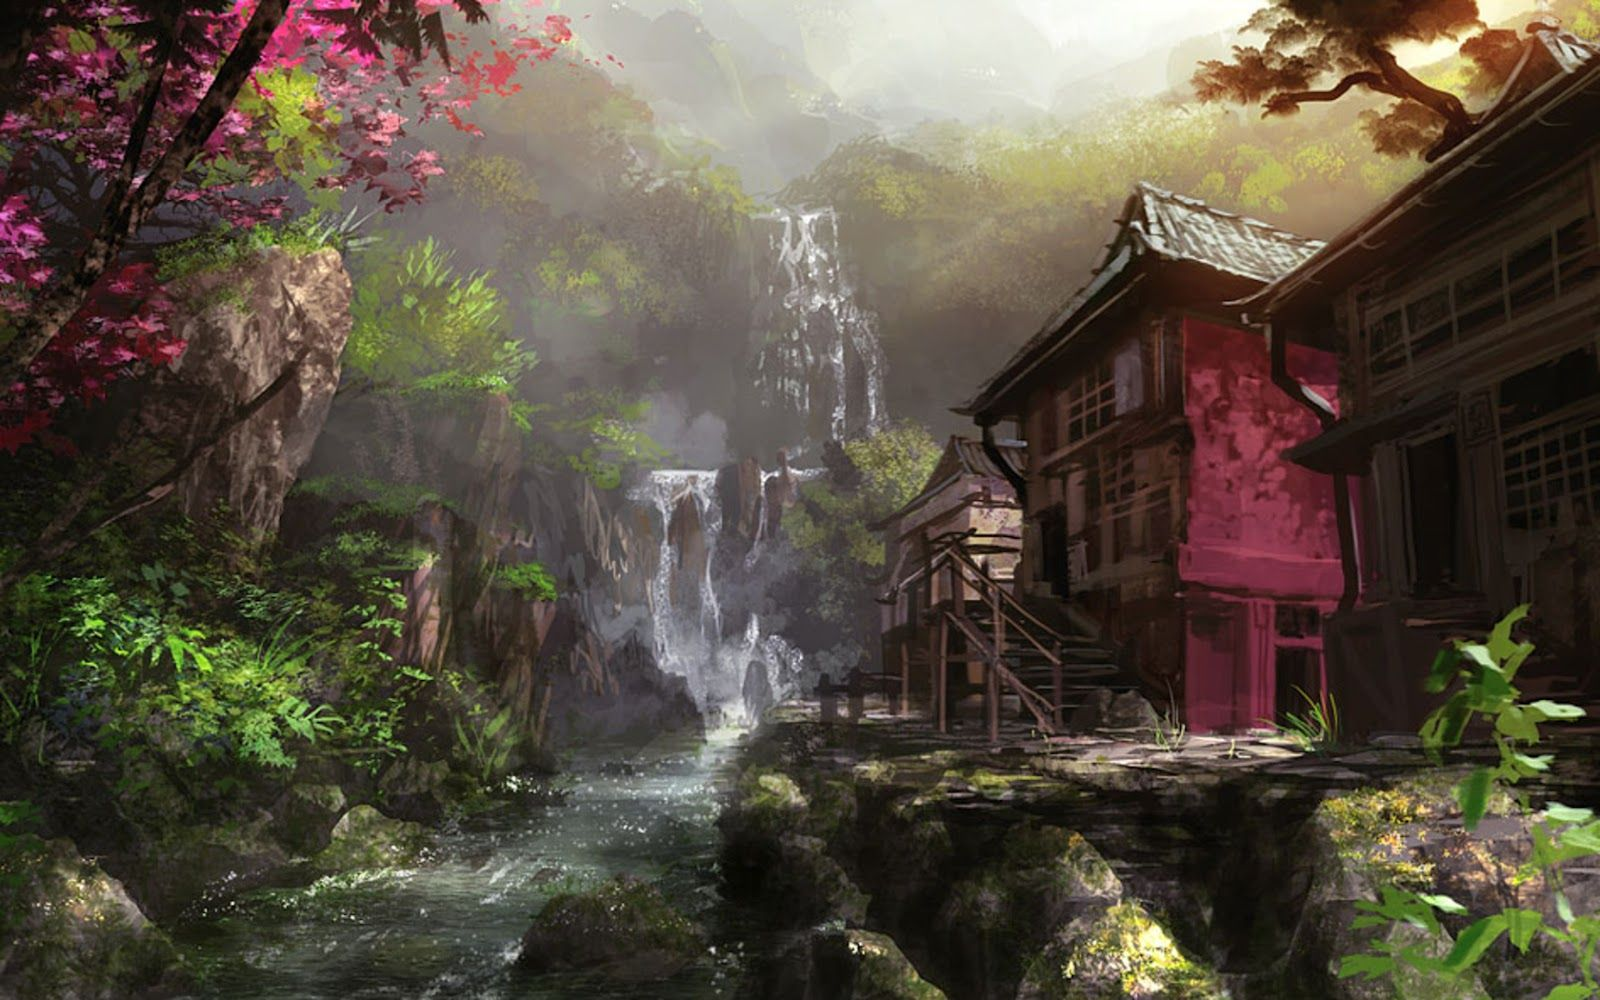 Descargar Wallpaper Para Computadoras Gratis In 2020 Landscape Artwork Environment Painting Wallpaper Pc